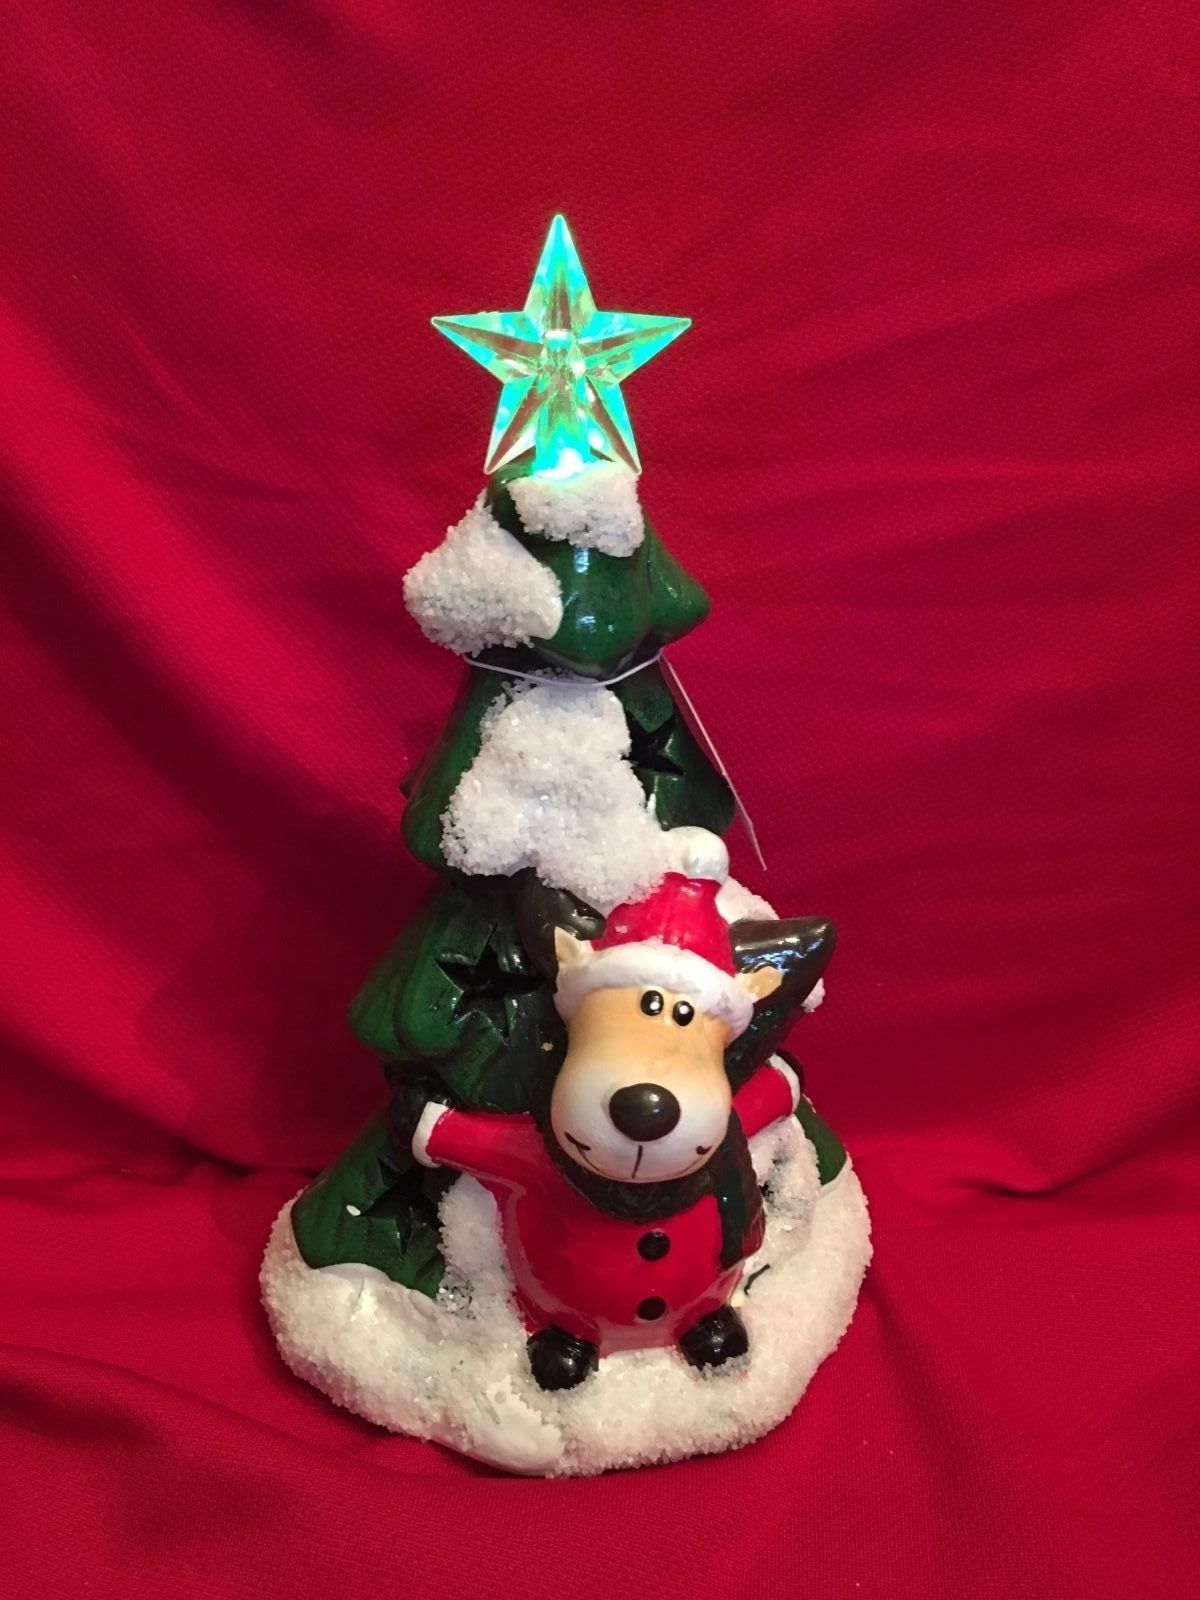 Christmas Decor Lit Figurine Tree https://t.co/UeD7BjxaIh https://t.co/kCxZdFF0A6